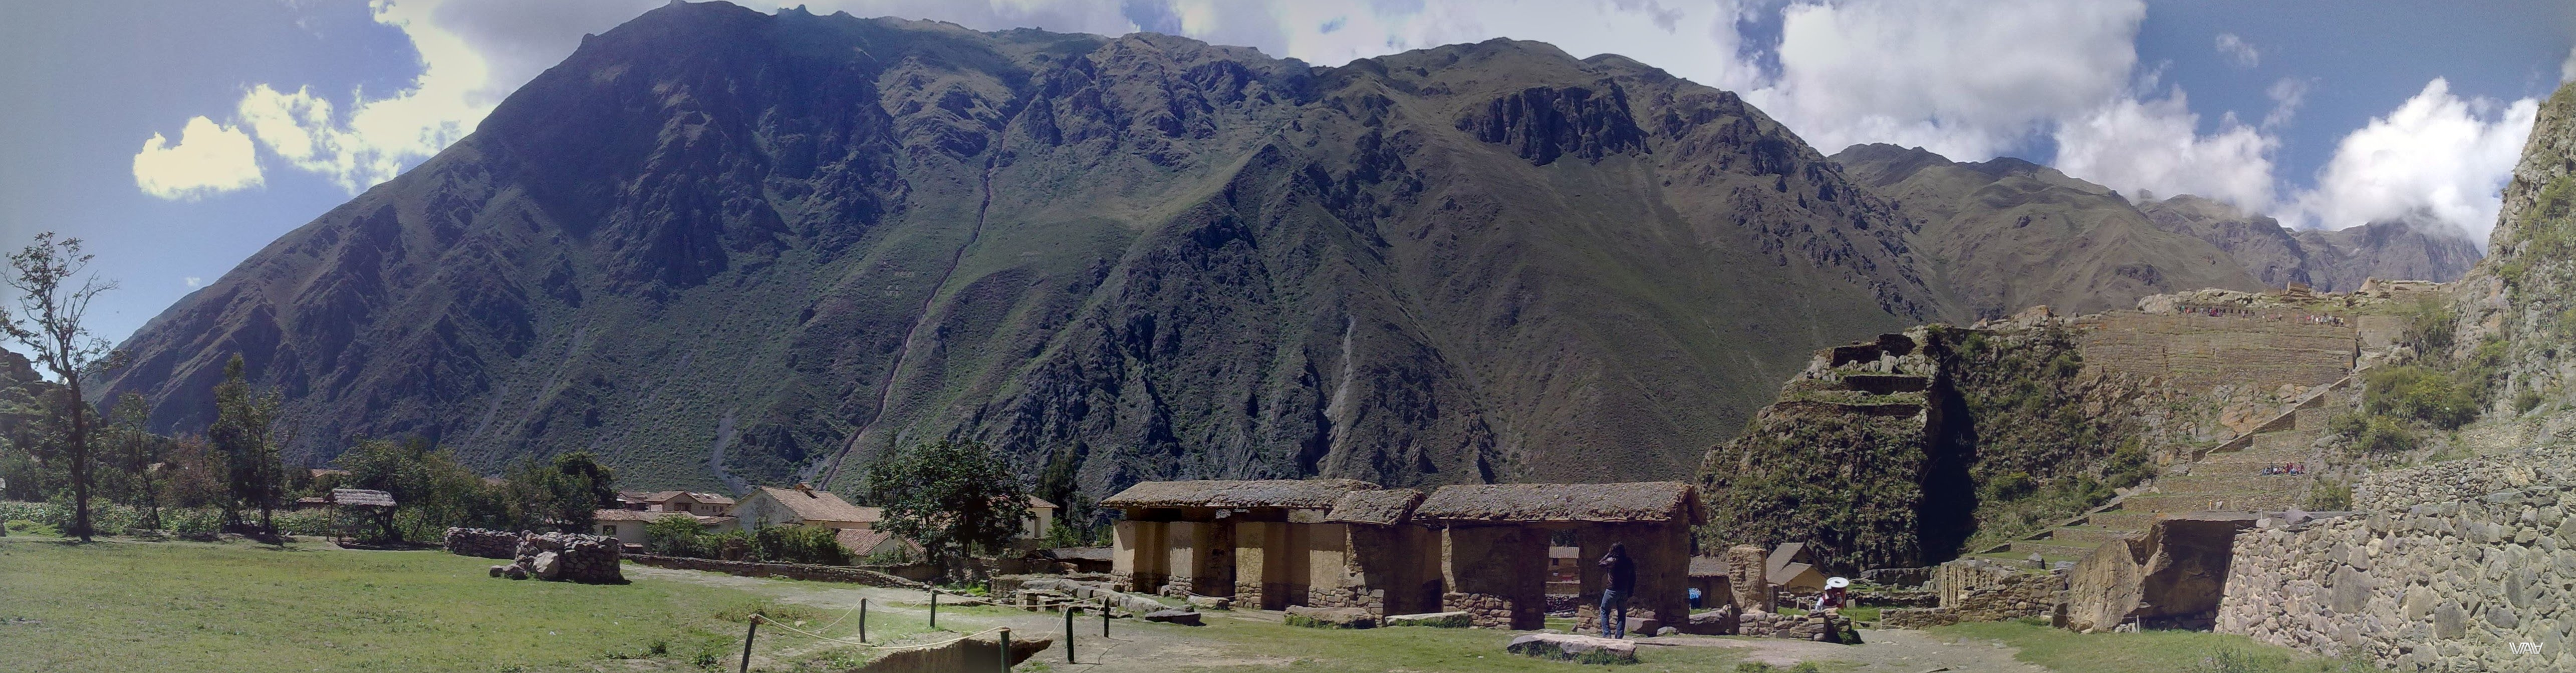 Panoramic view of the mountains and part of the construction of the ancient city of Ollantaytambo in Peru. The beauty captures the spirit.